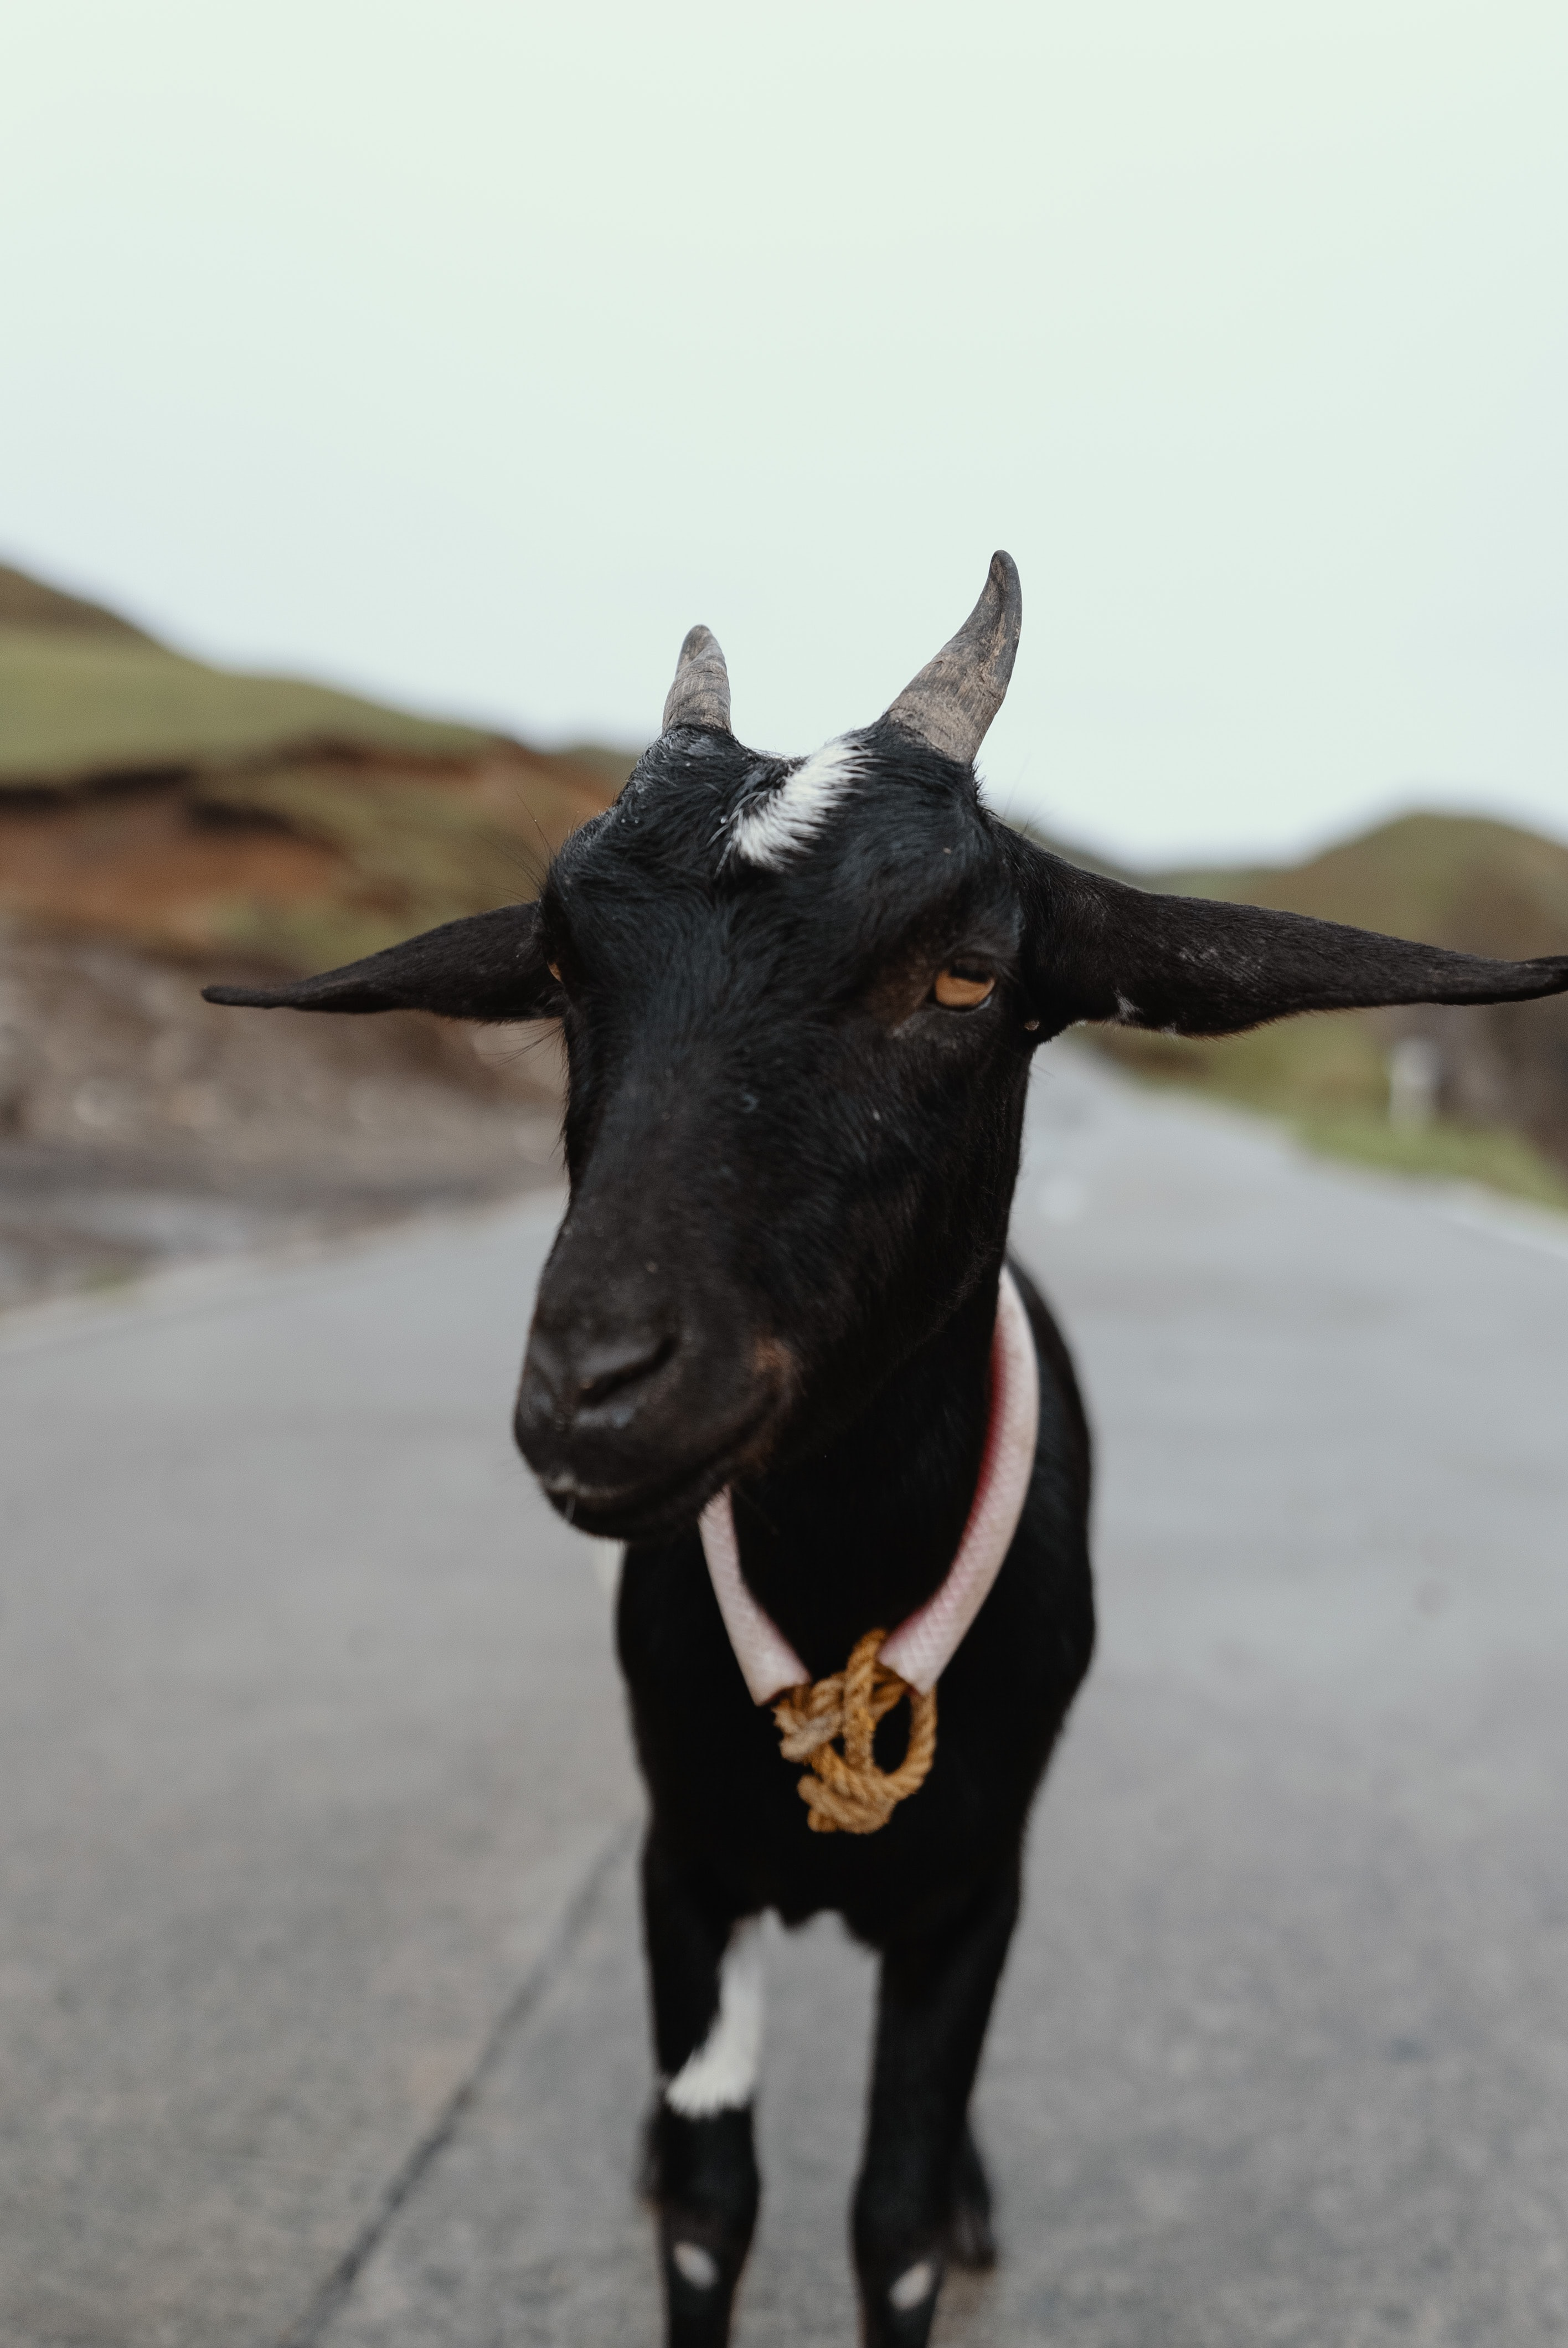 closeup photography of black goat on road during daytime